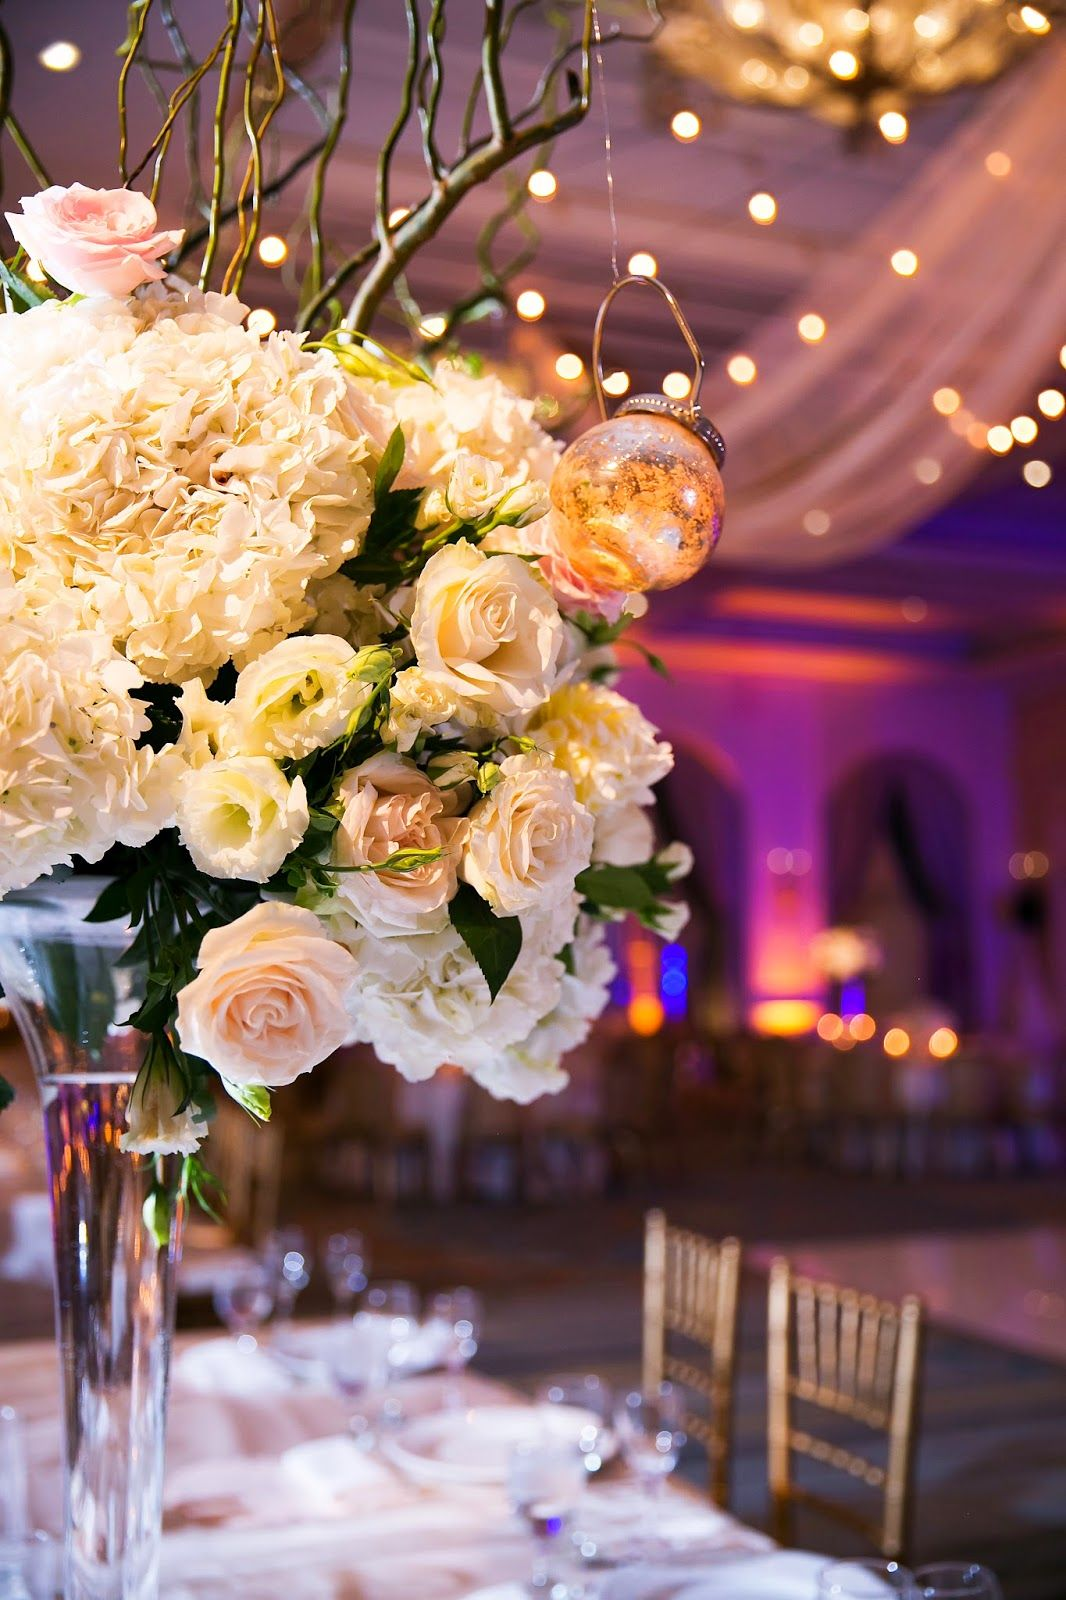 Real Wedding: Jenna and John's Big Fun Italian Wedding Planned and designed by Weddings by StarDust Wedding Planners - Dallas, Texas